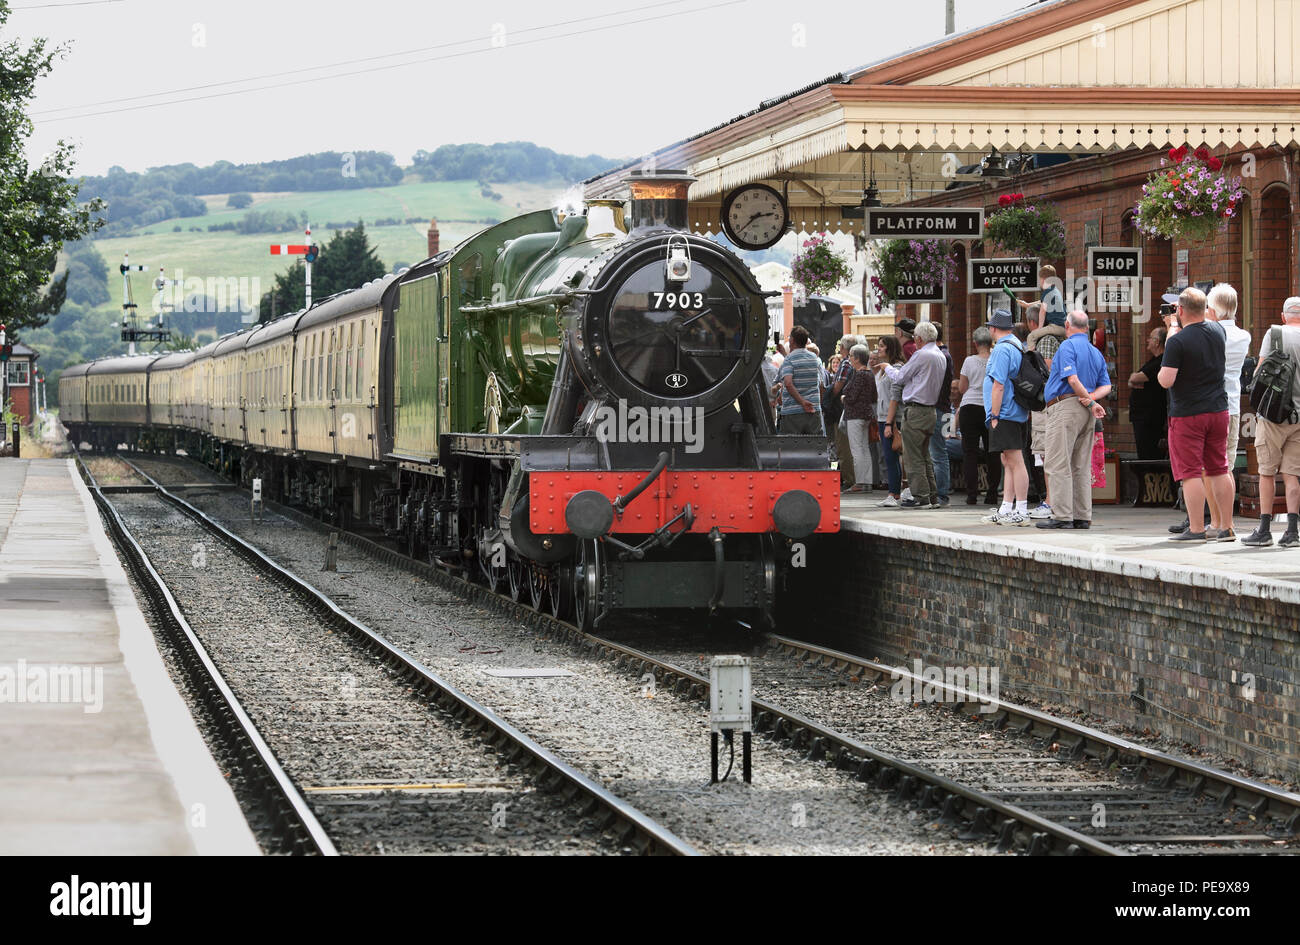 Steam enthusiasts fill platform 1 at Toddington station on the Gloucestershire Warwickshire Railway as a train to Broadway arrives. - Stock Image